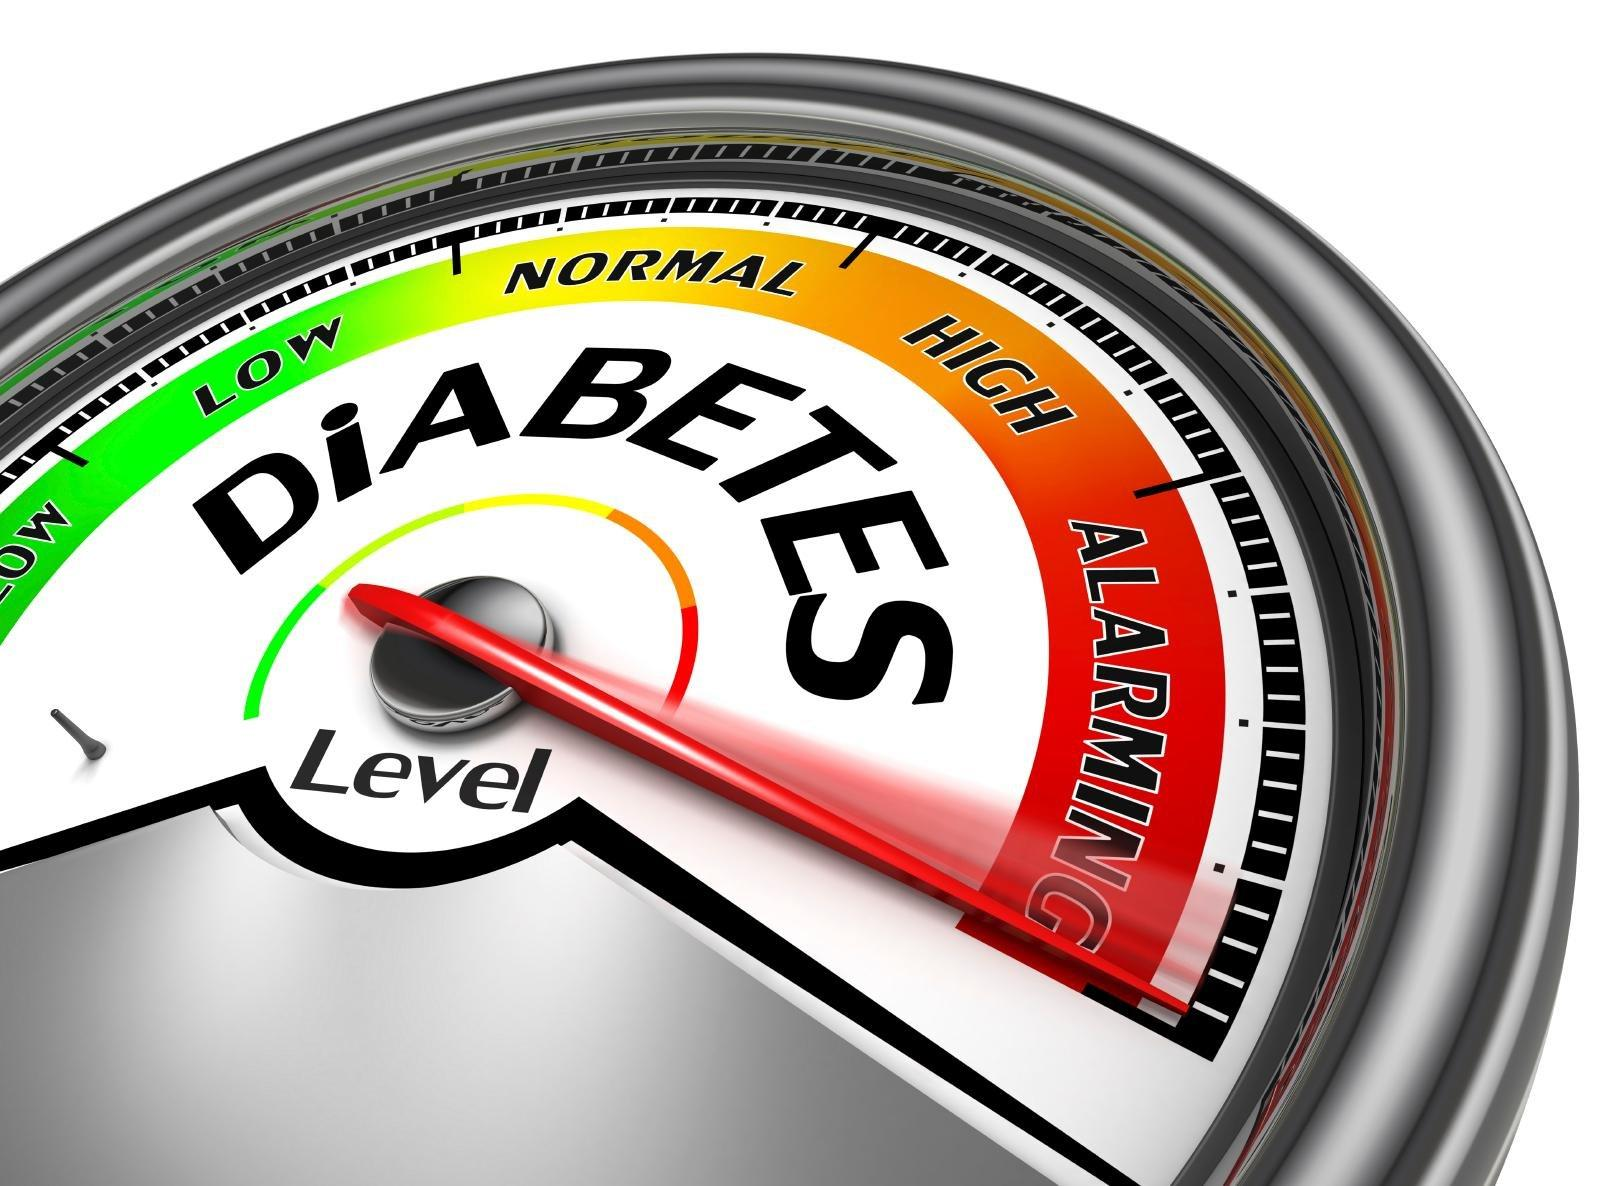 Can Type 2 Diabetes Cause Heart Disease?